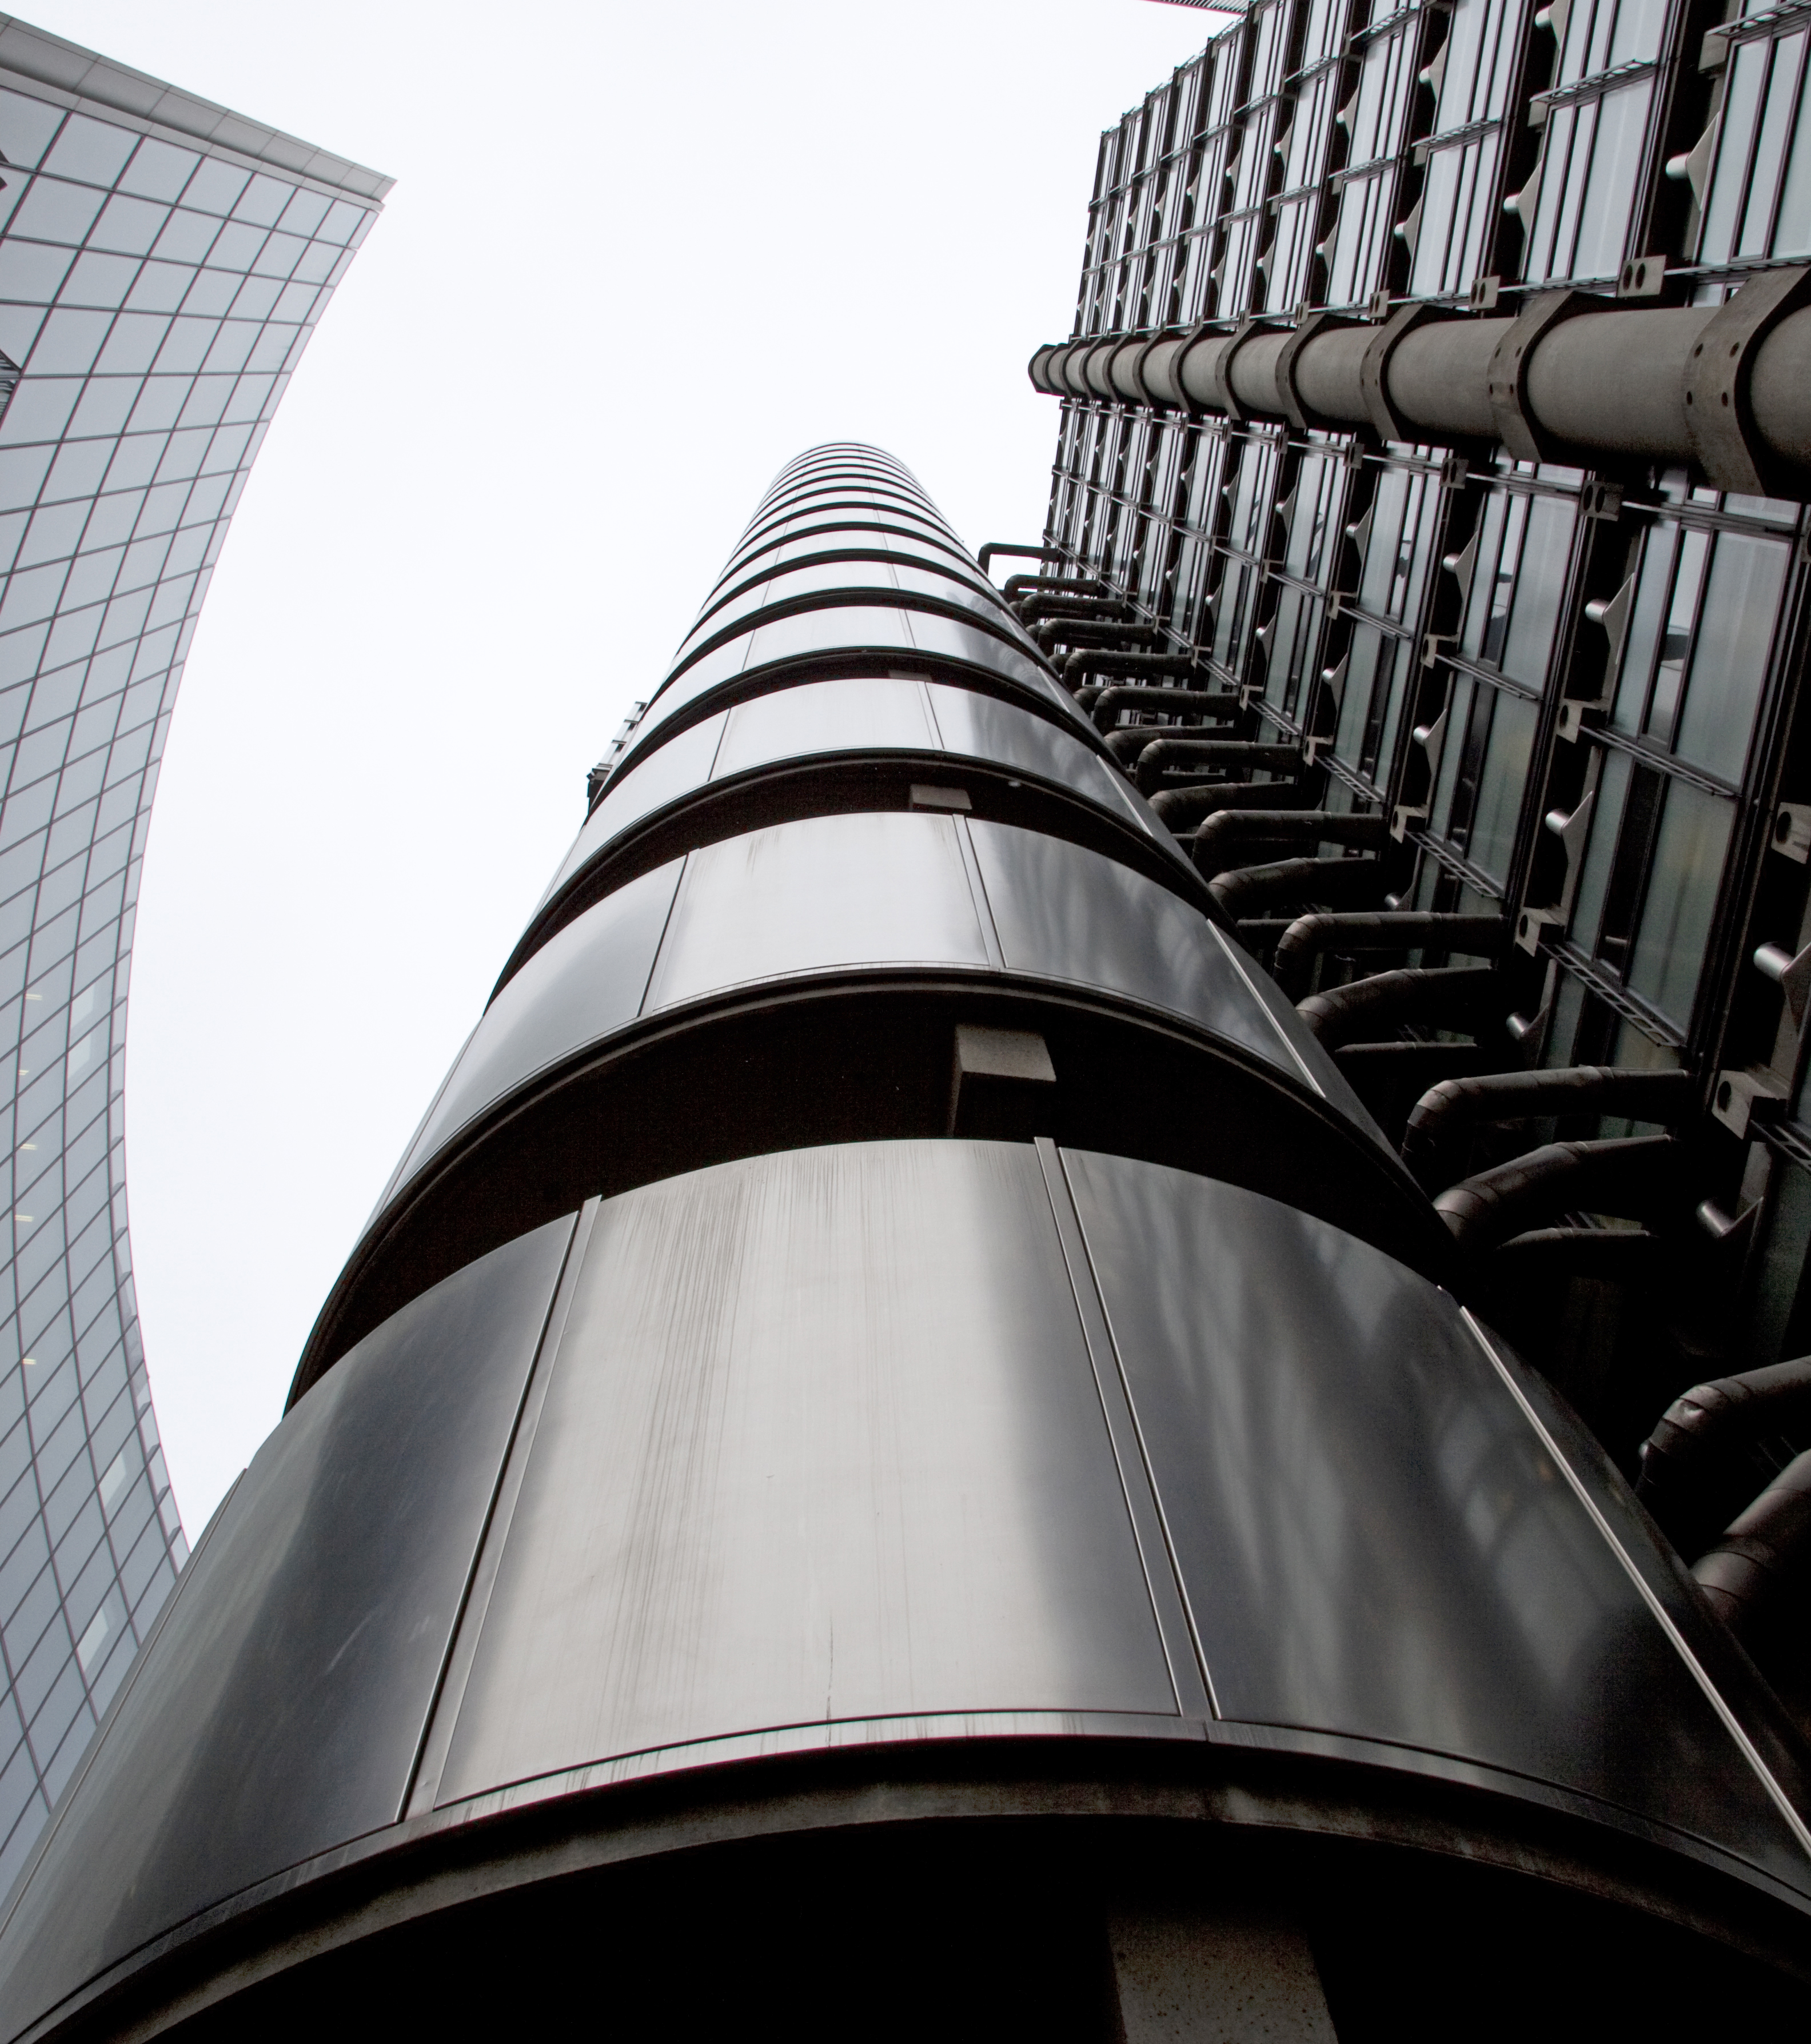 http://upload.wikimedia.org/wikipedia/commons/2/2a/Lloyds_building_1_%284276596675%29.jpg